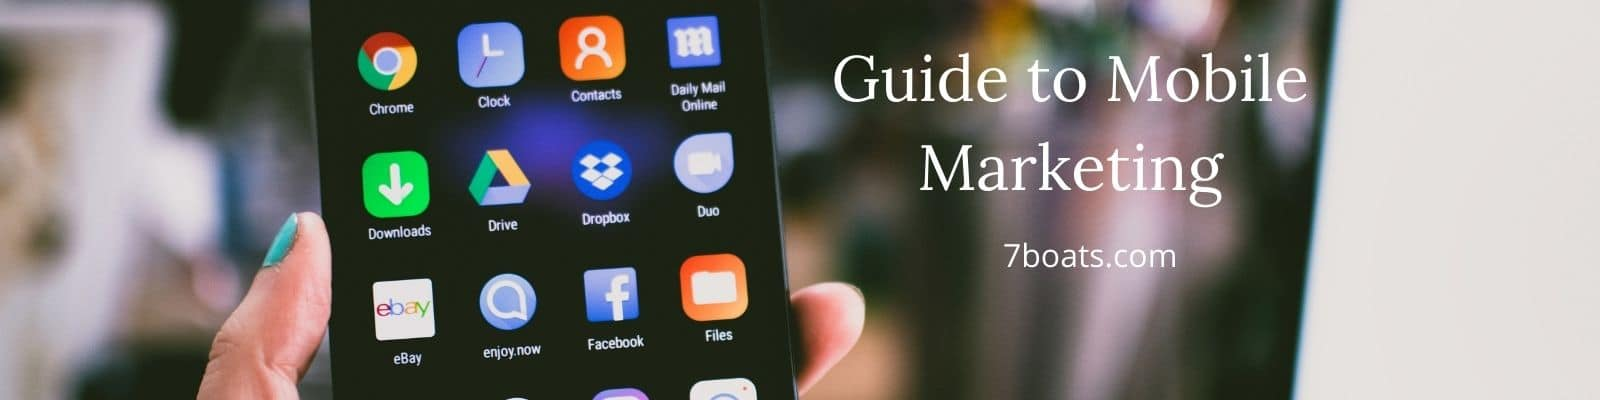 Guide to Mobile Marketing